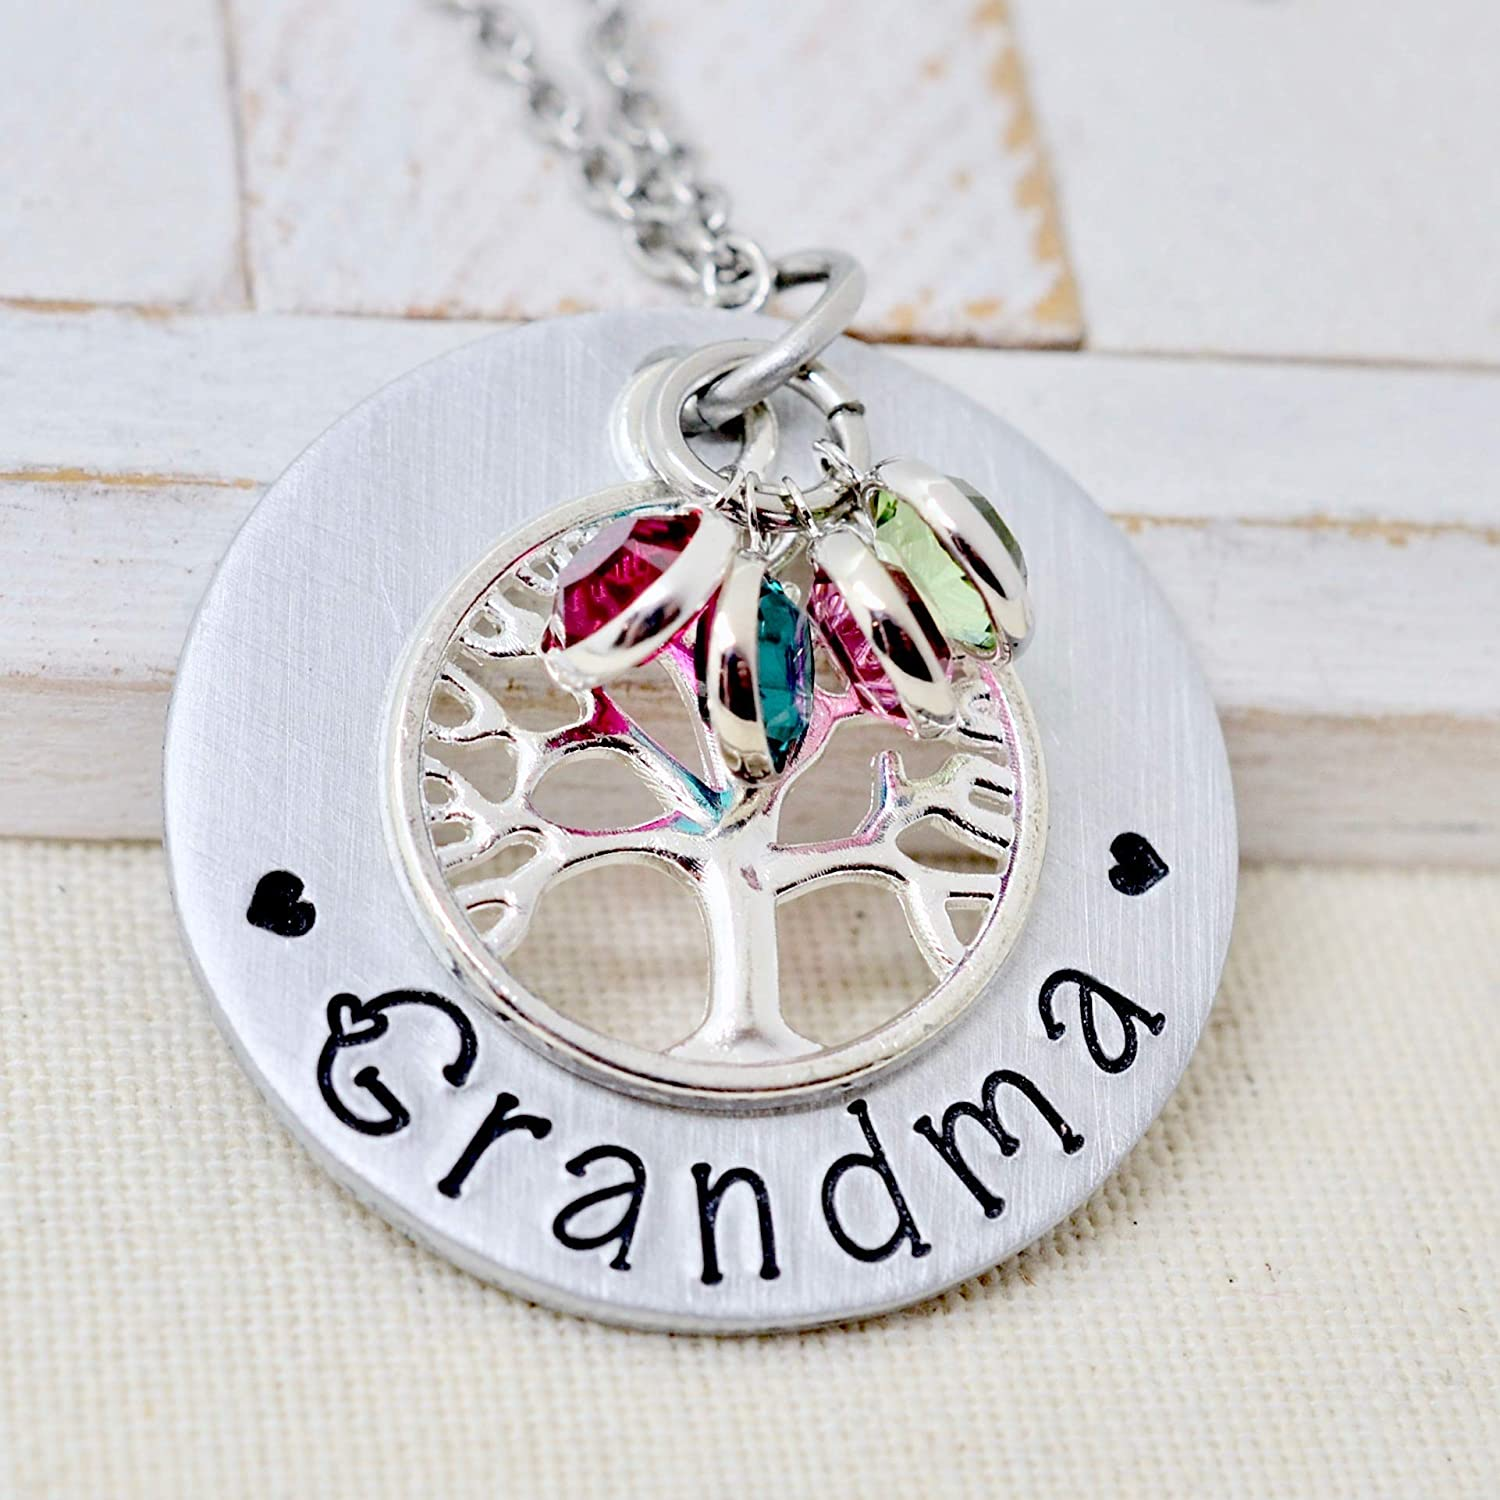 Family birthstone necklace Mother necklace Grandma necklace Personalized birthstone necklace Mommy necklace Gift for her Custom jewelry